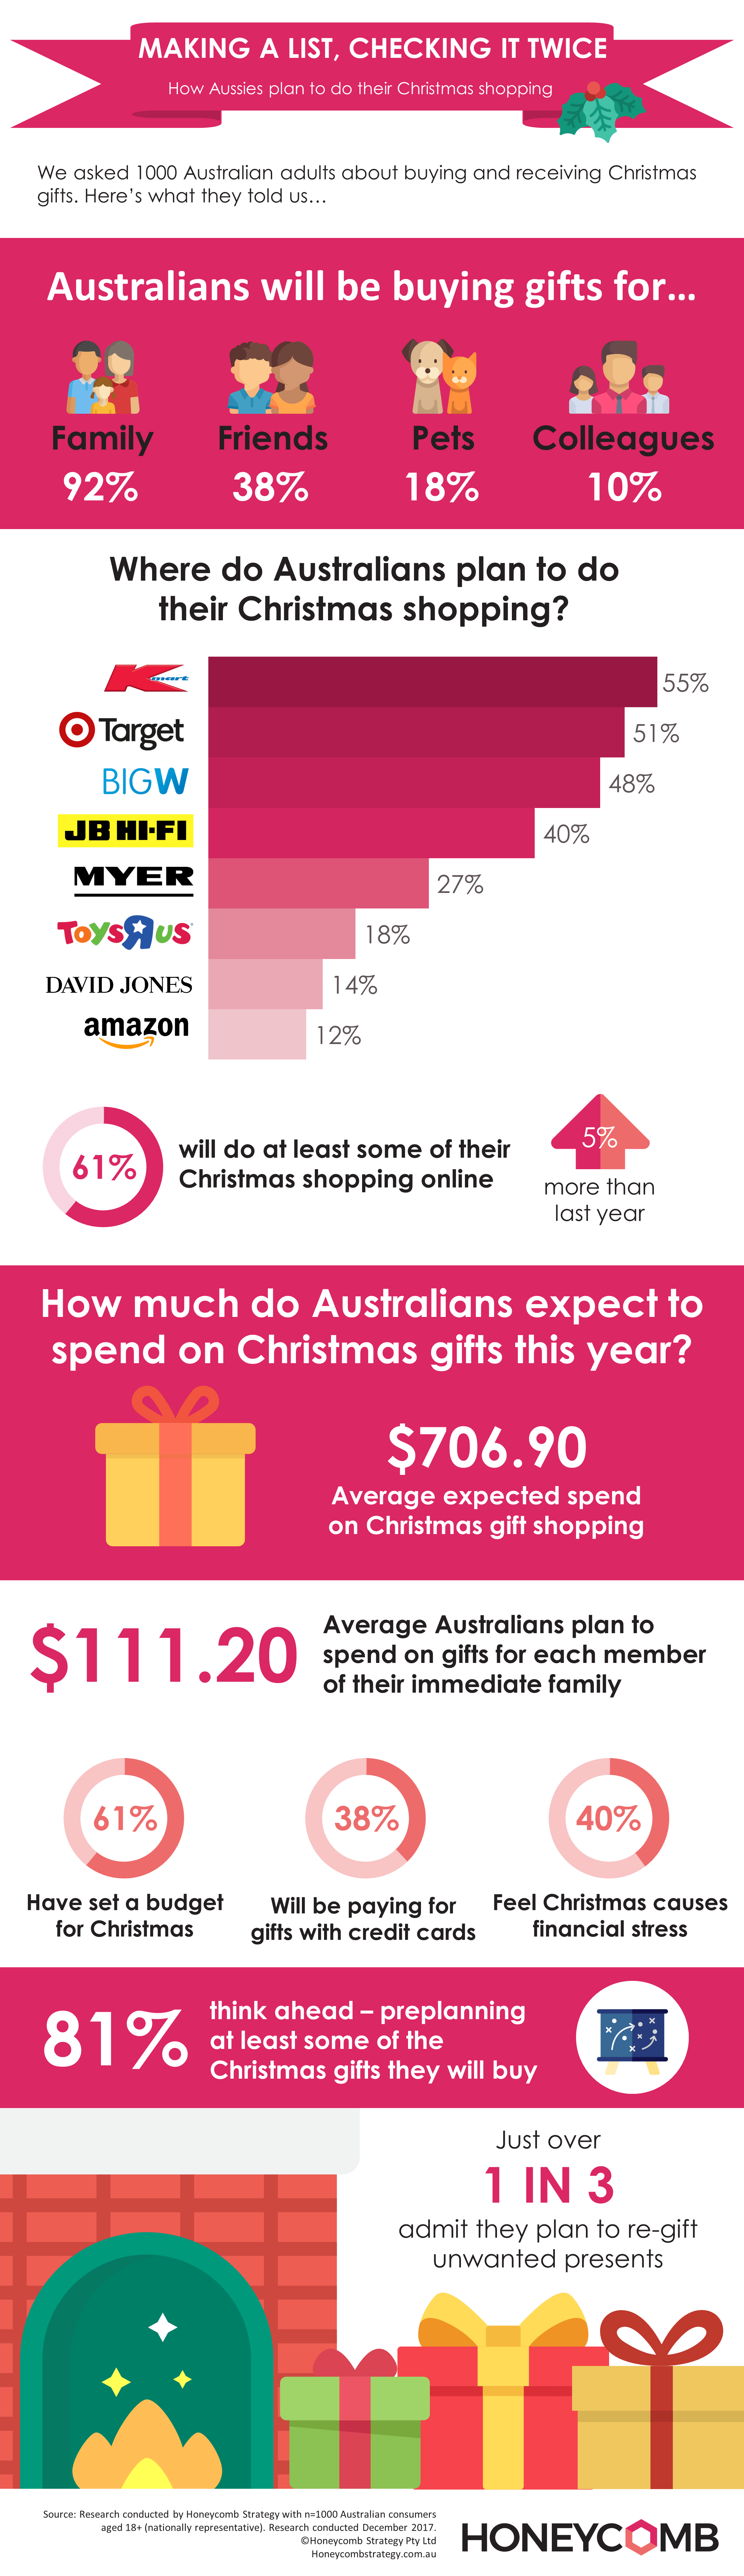 Christmas Gift Giving - 2017 infographic